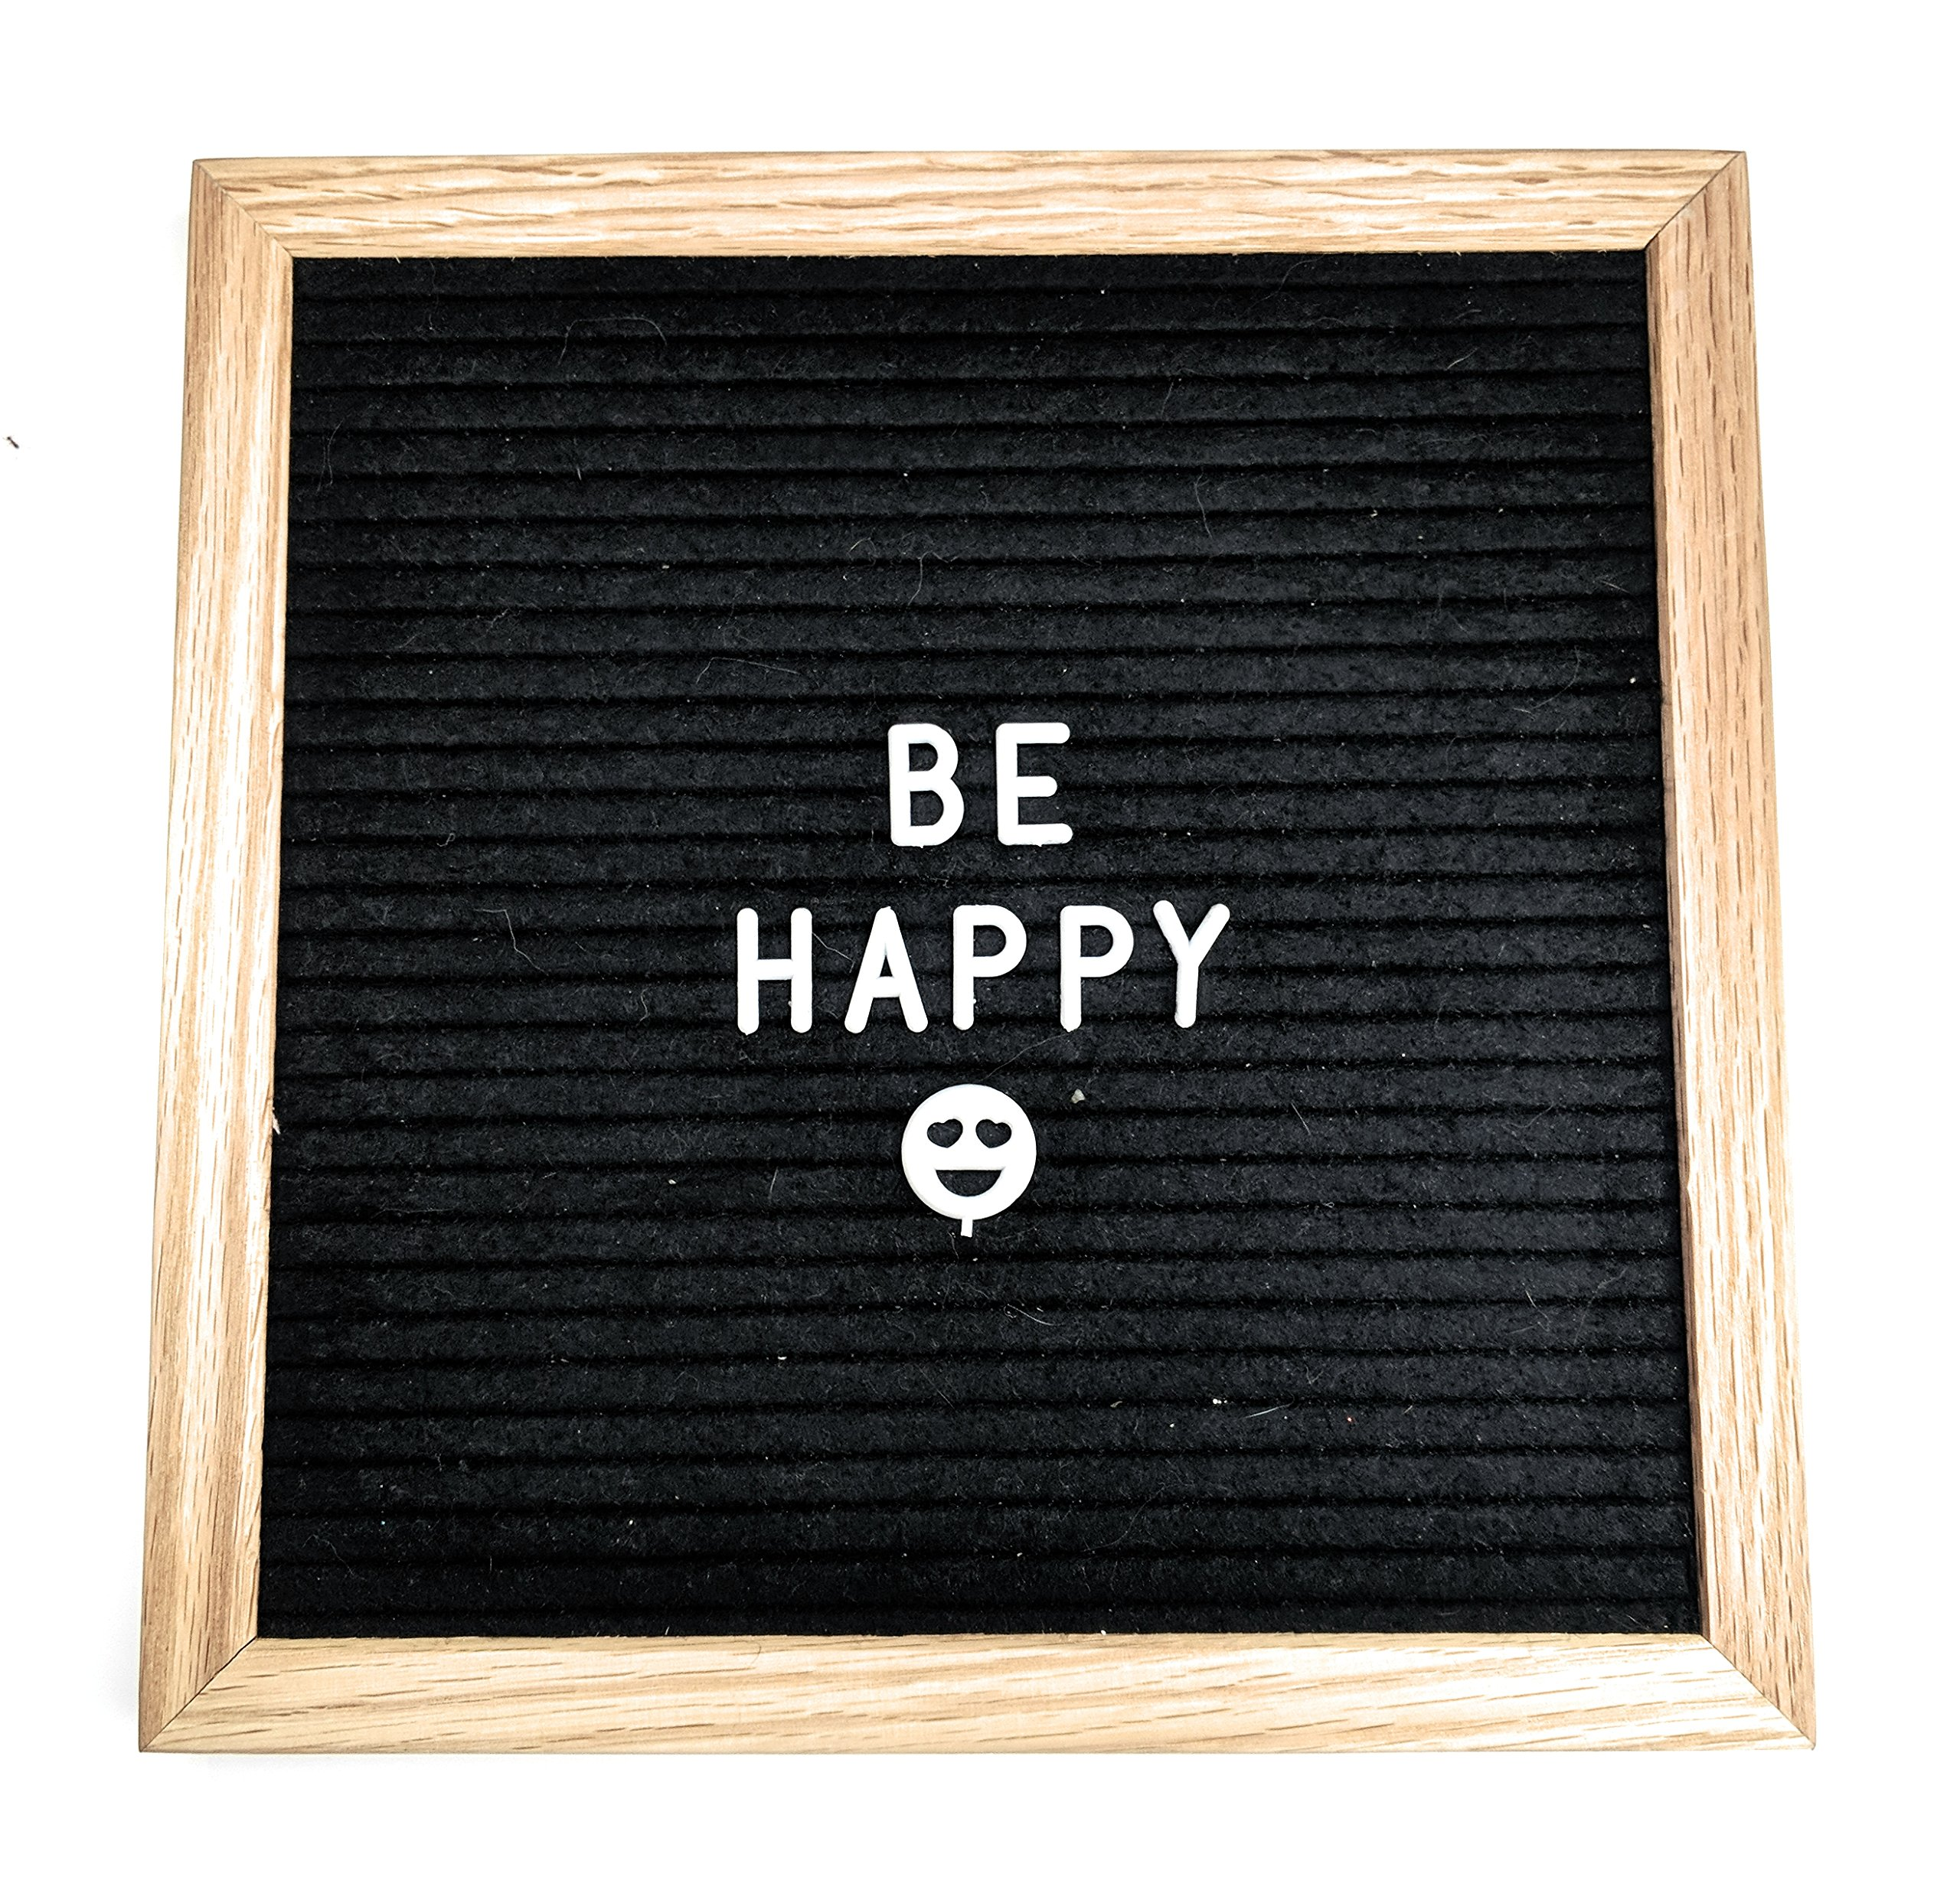 Open-Faced Changeable Felt Letter Board With Sturdy Wooden Frame, Free Canvas Bag, Pre-Installed Wall Mount, And 340 Characters Including, Punctuation, Numbers, Emojis, and Symbols By Adept Concepts